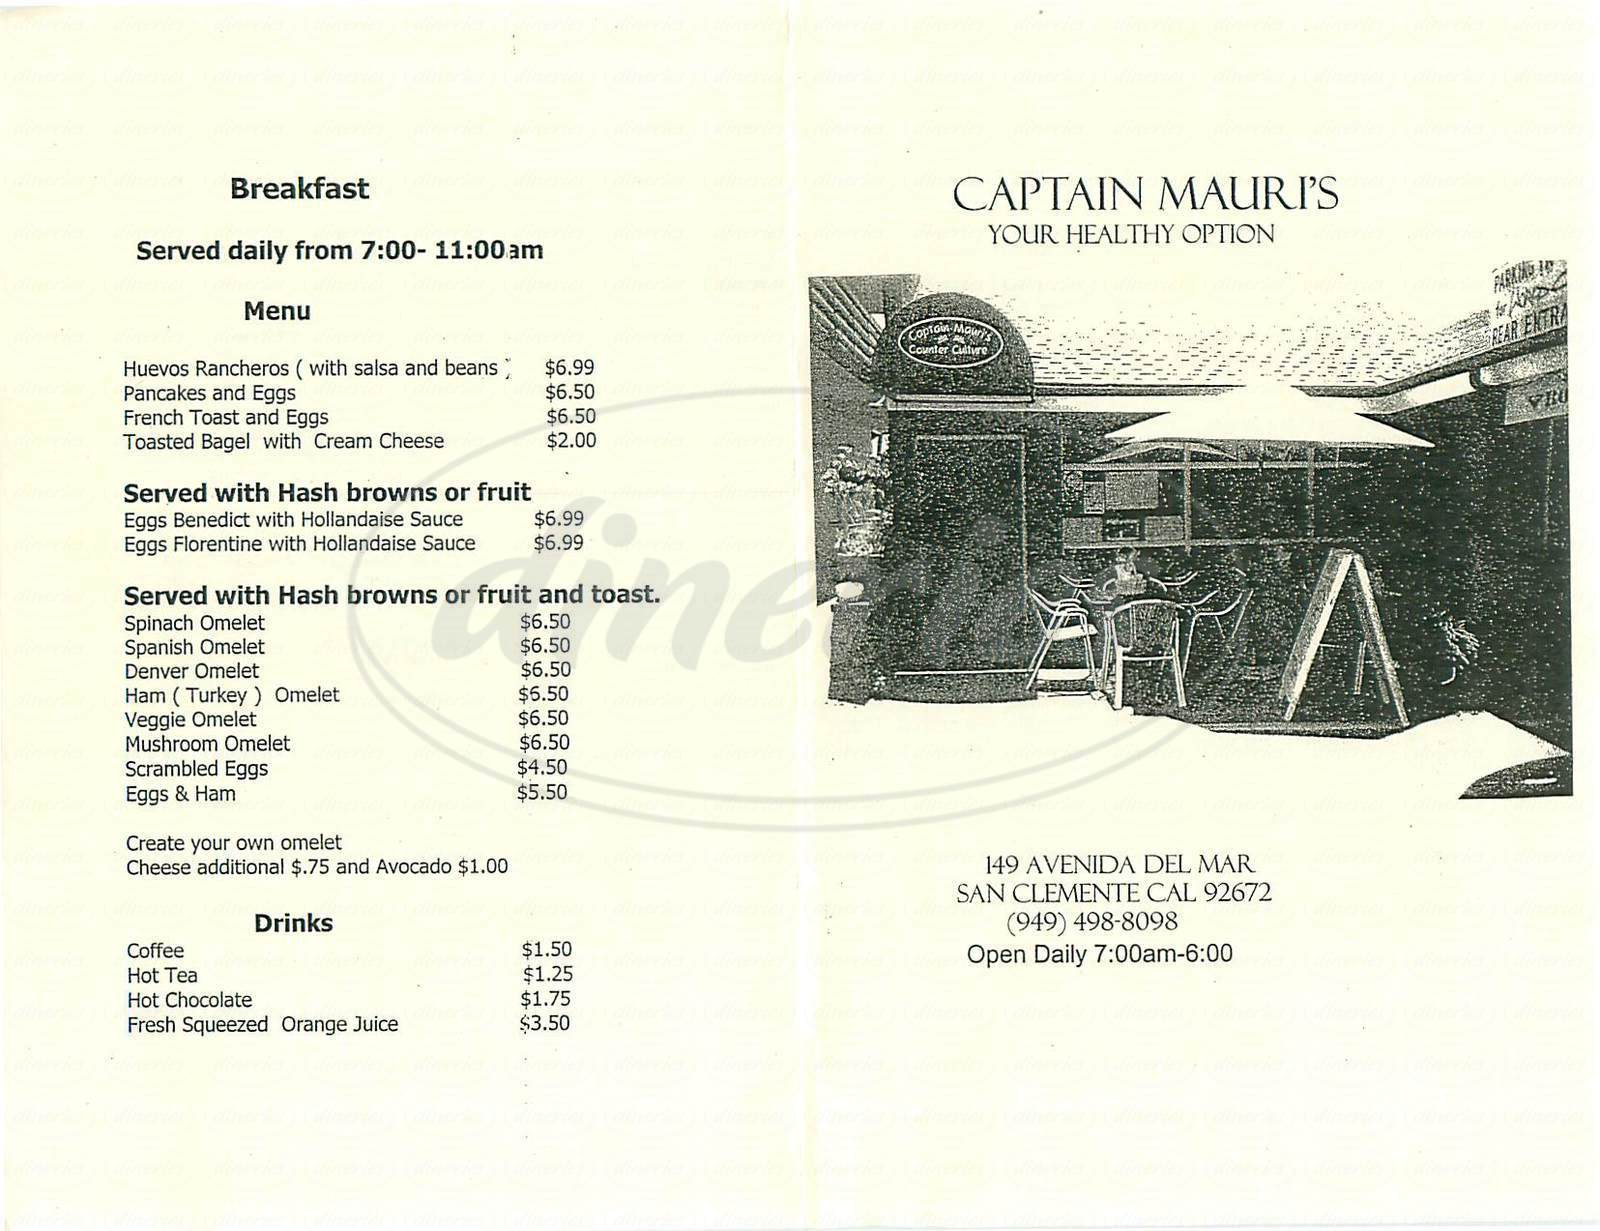 menu for Captain Mauri's